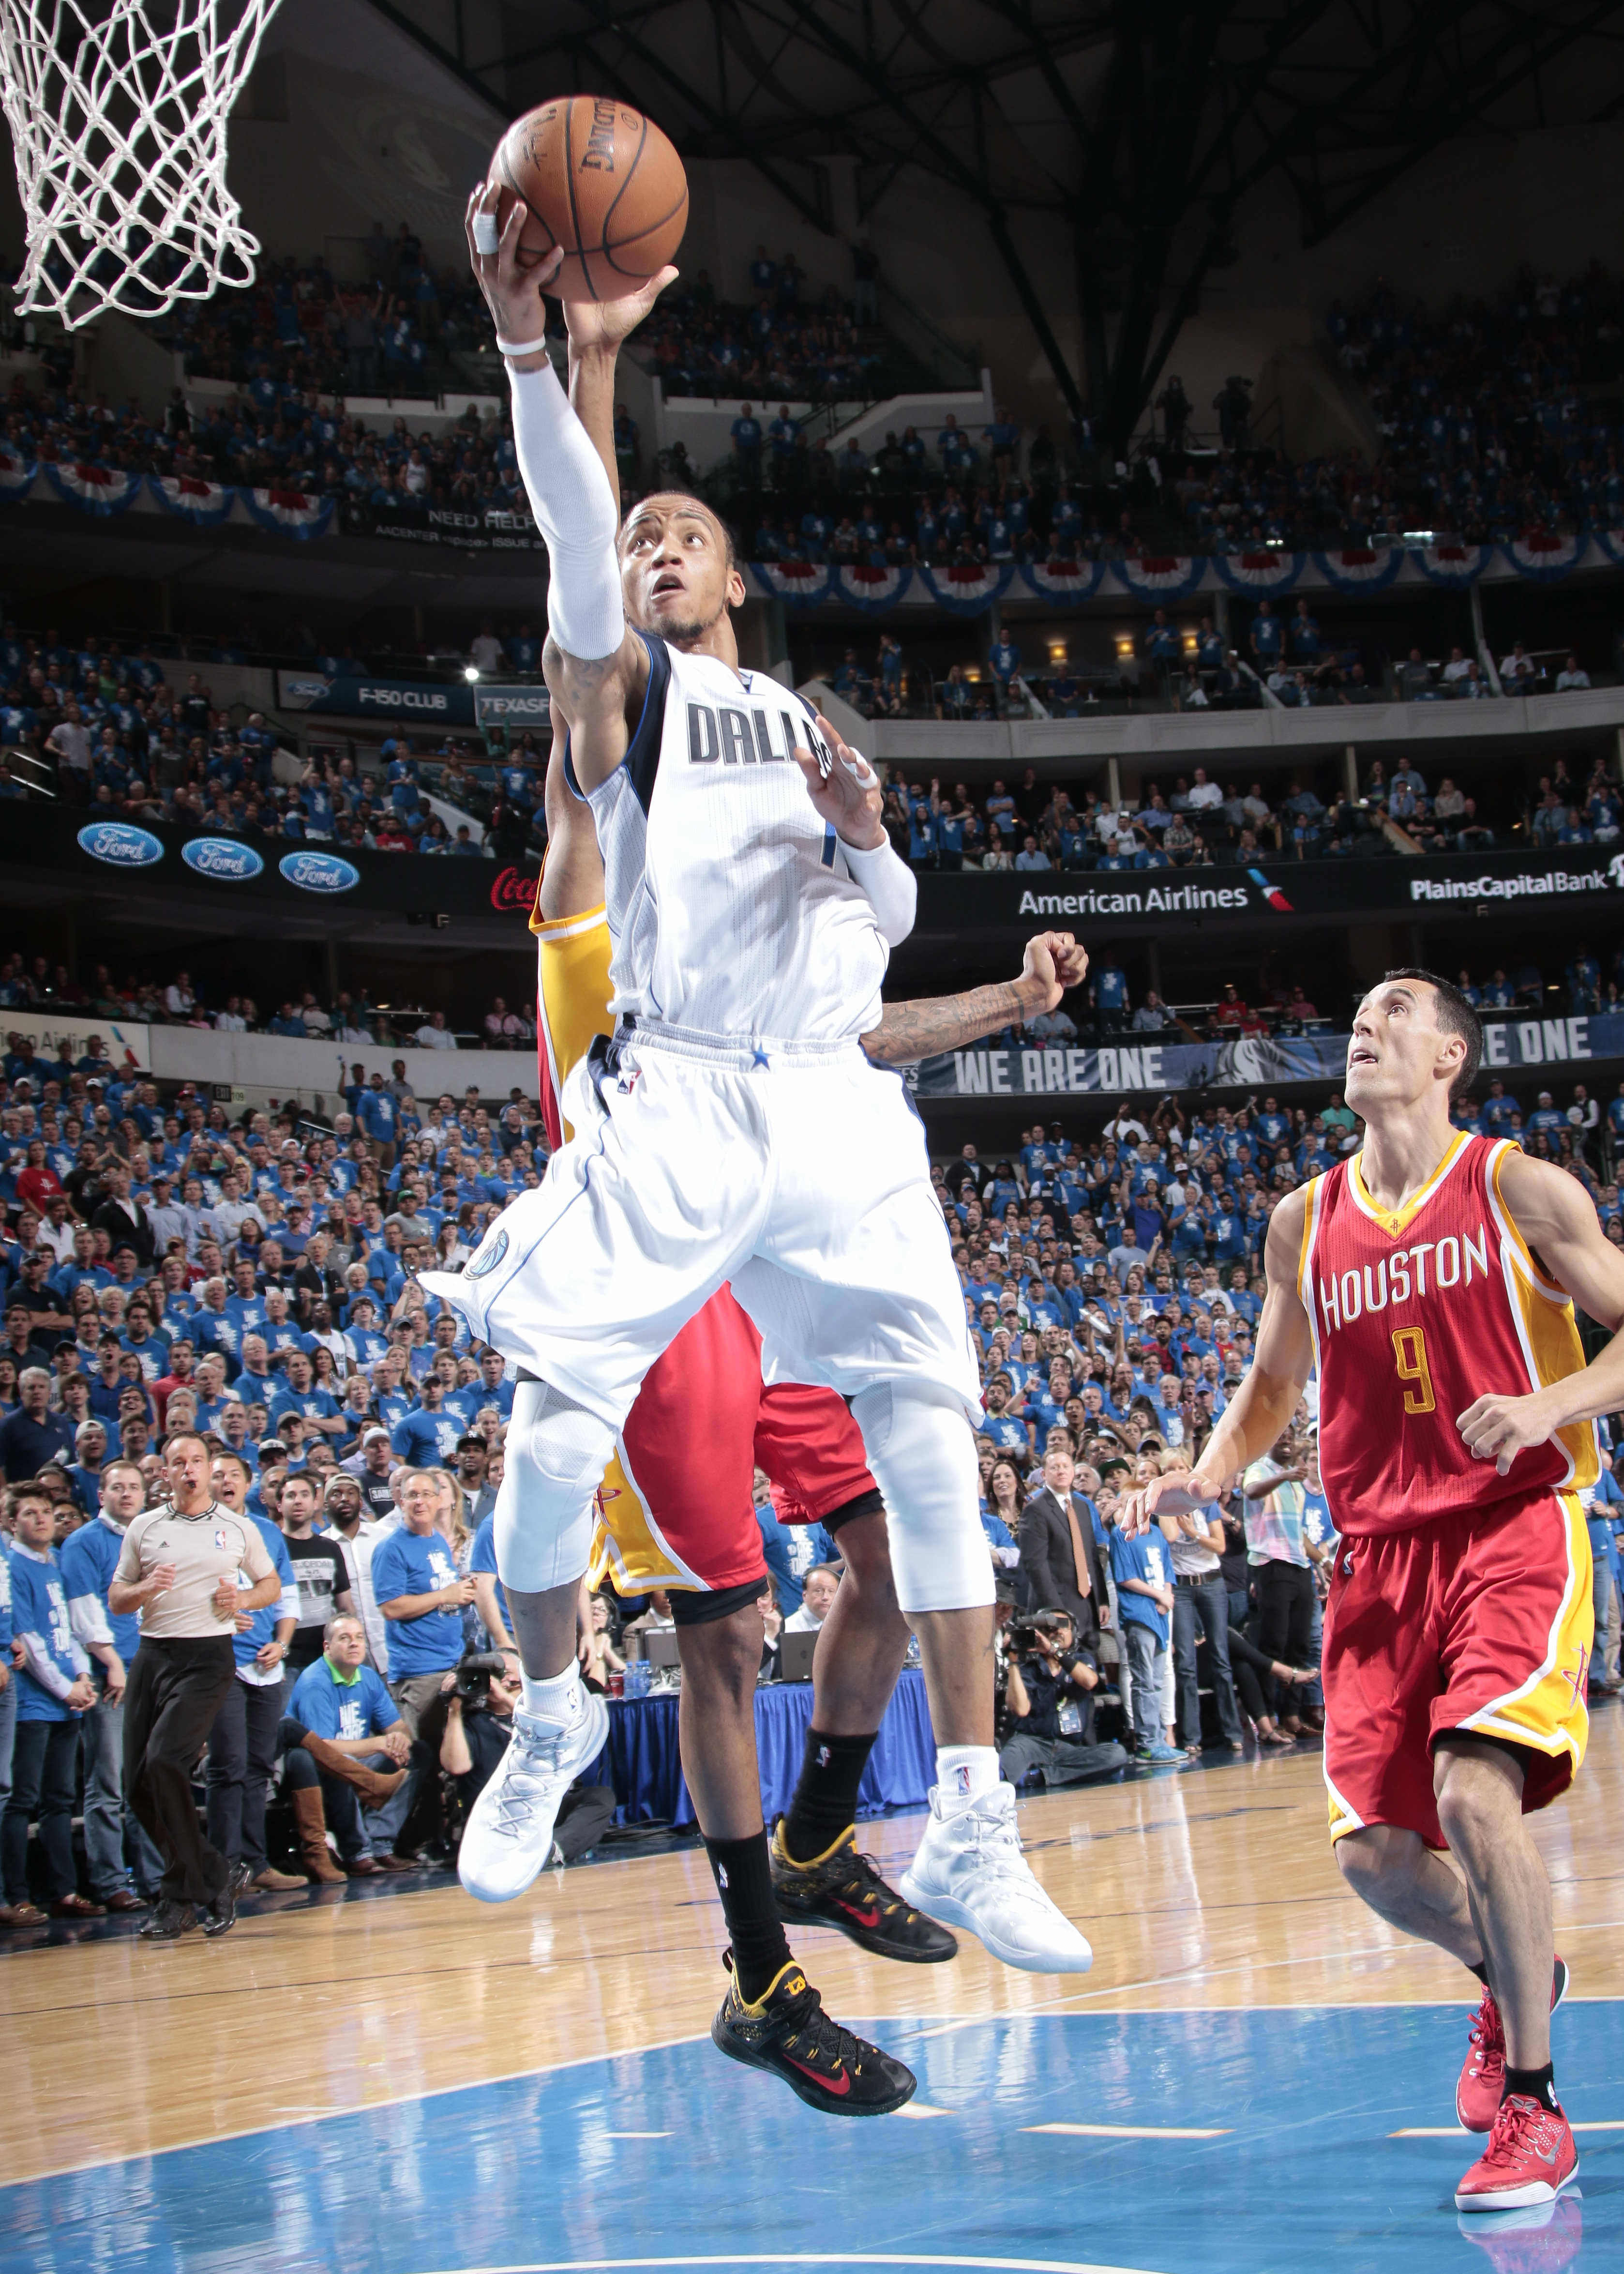 DALLAS, TX - APRIL 26: Monta Ellis #11 of the Dallas Mavericks goes in for the lay up against the Houston Rockets during Game Four of the Western Conference Quarterfinals of the 2015 NBA Playoffs on April 26, 2015 at the American Airlines Center in Dallas